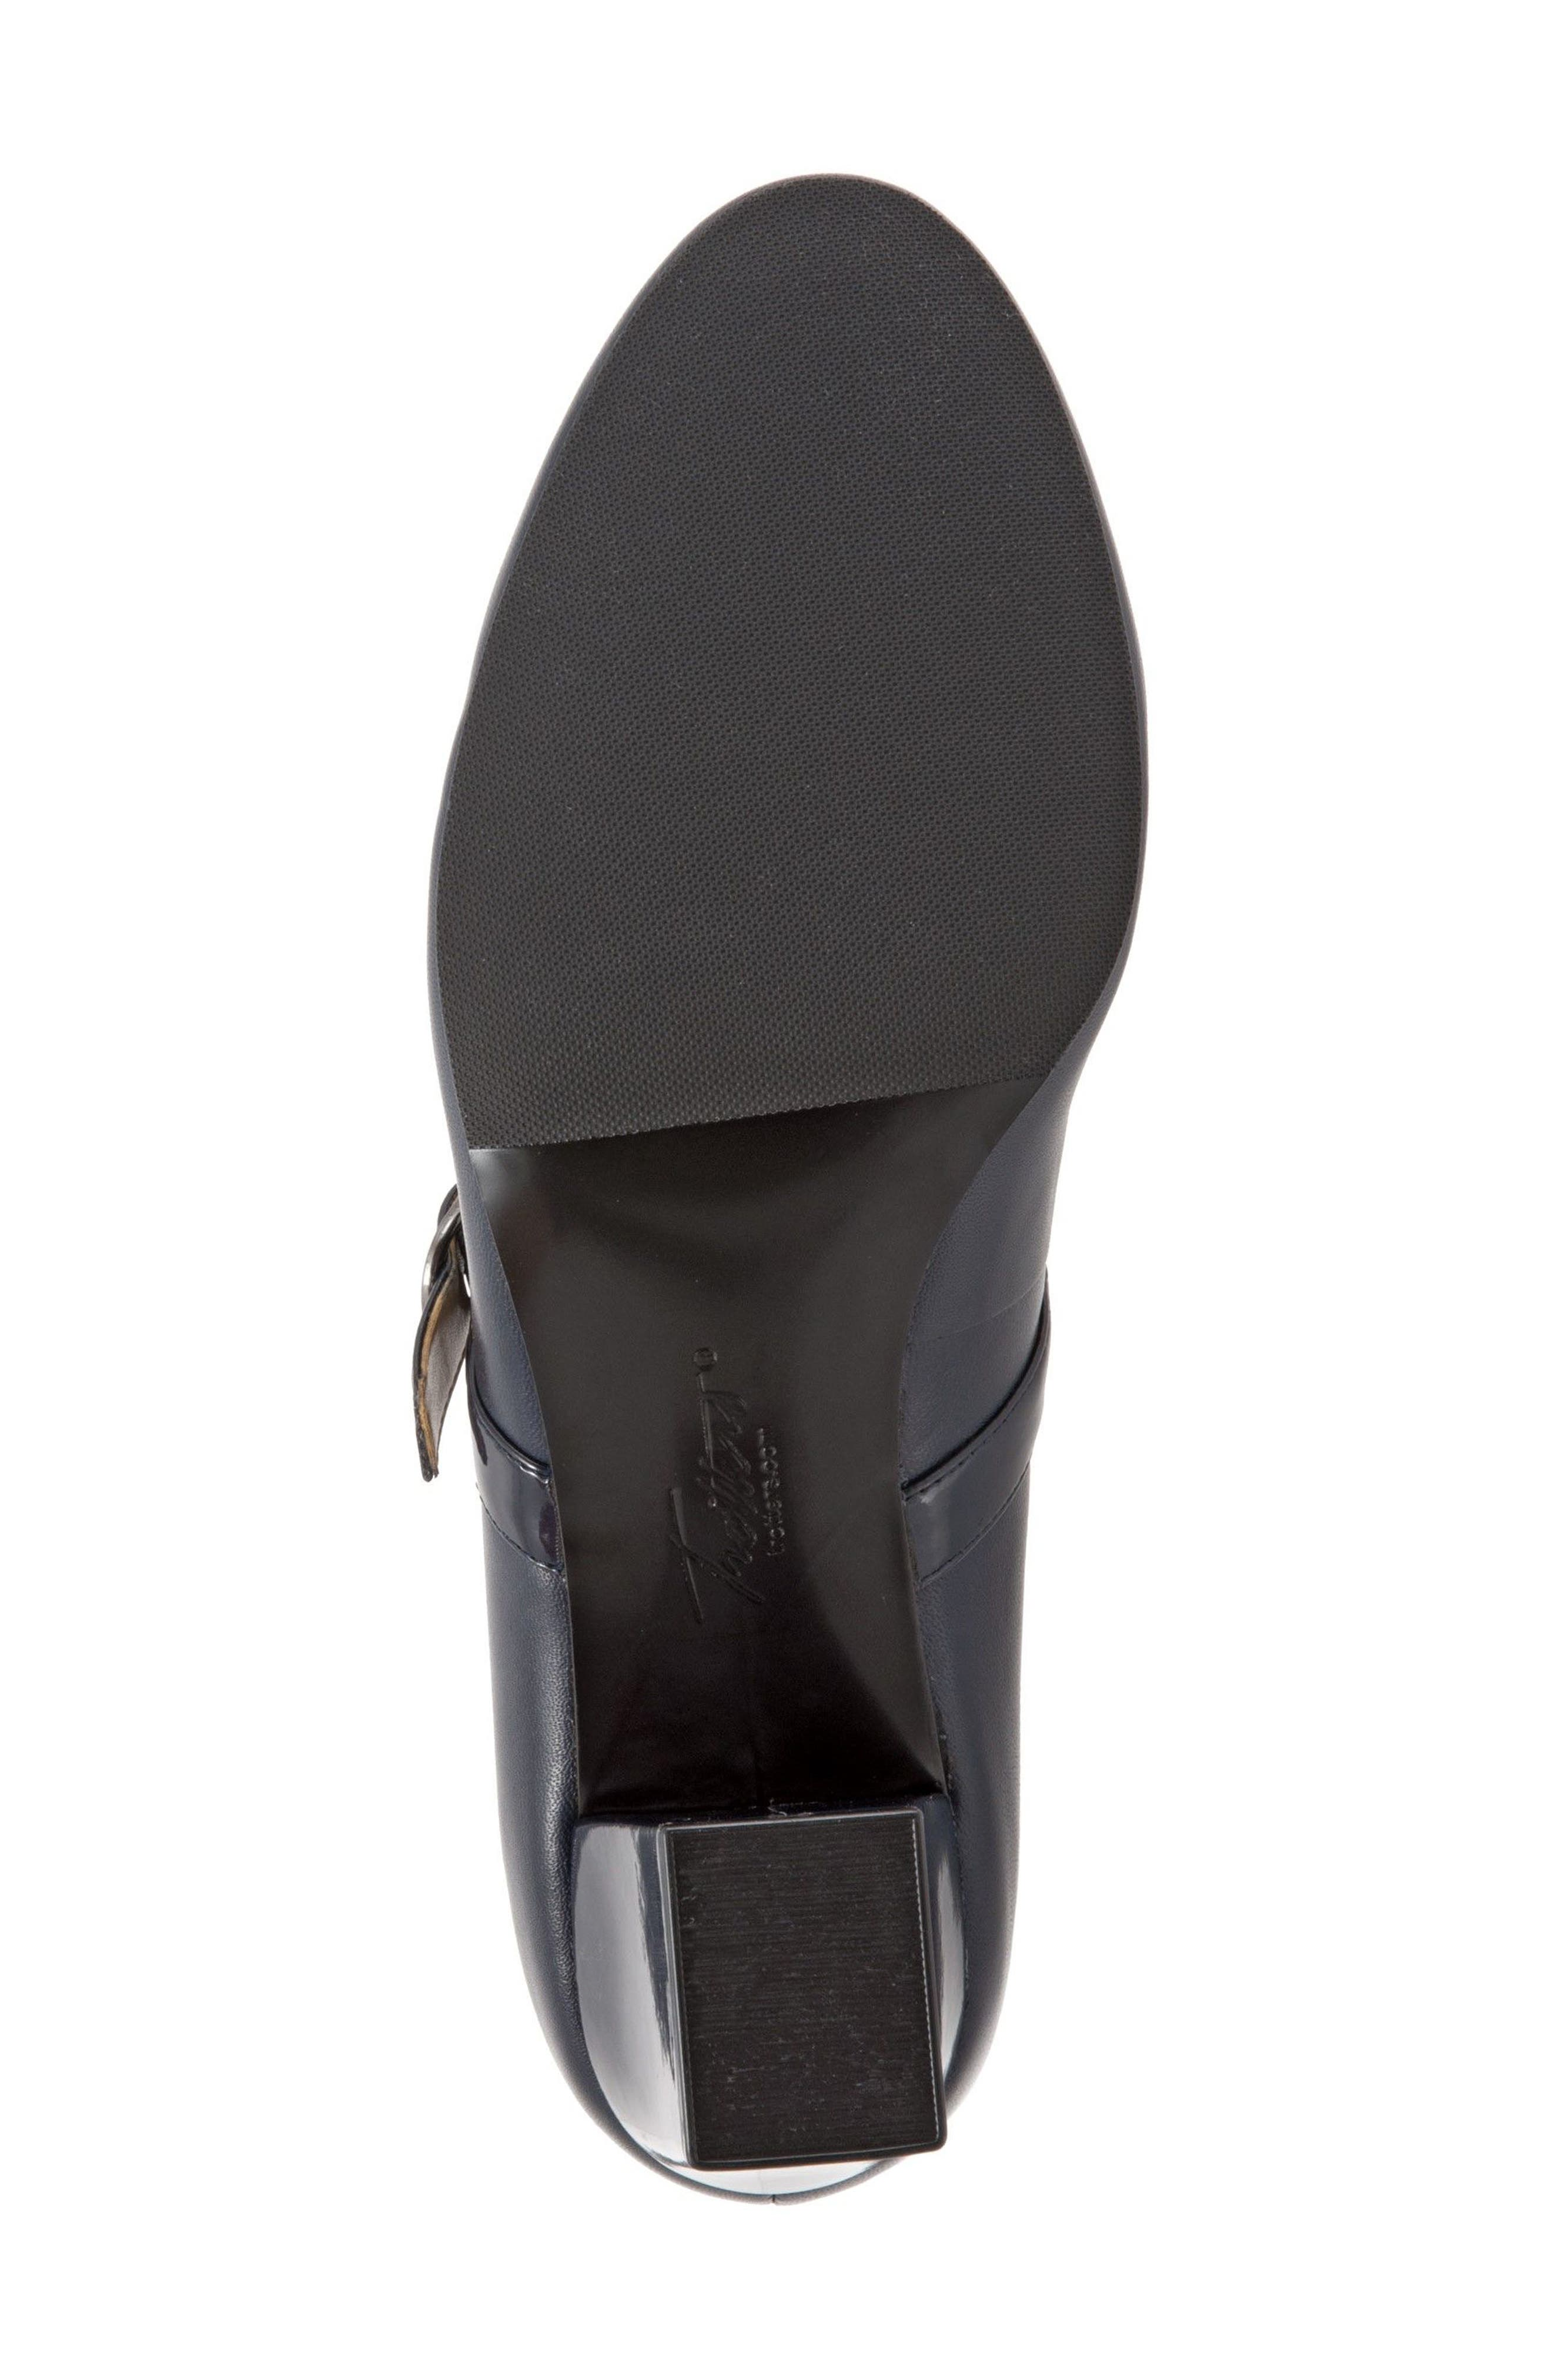 'Candice' Mary Jane Pump,                             Alternate thumbnail 6, color,                             NAVY LEATHER